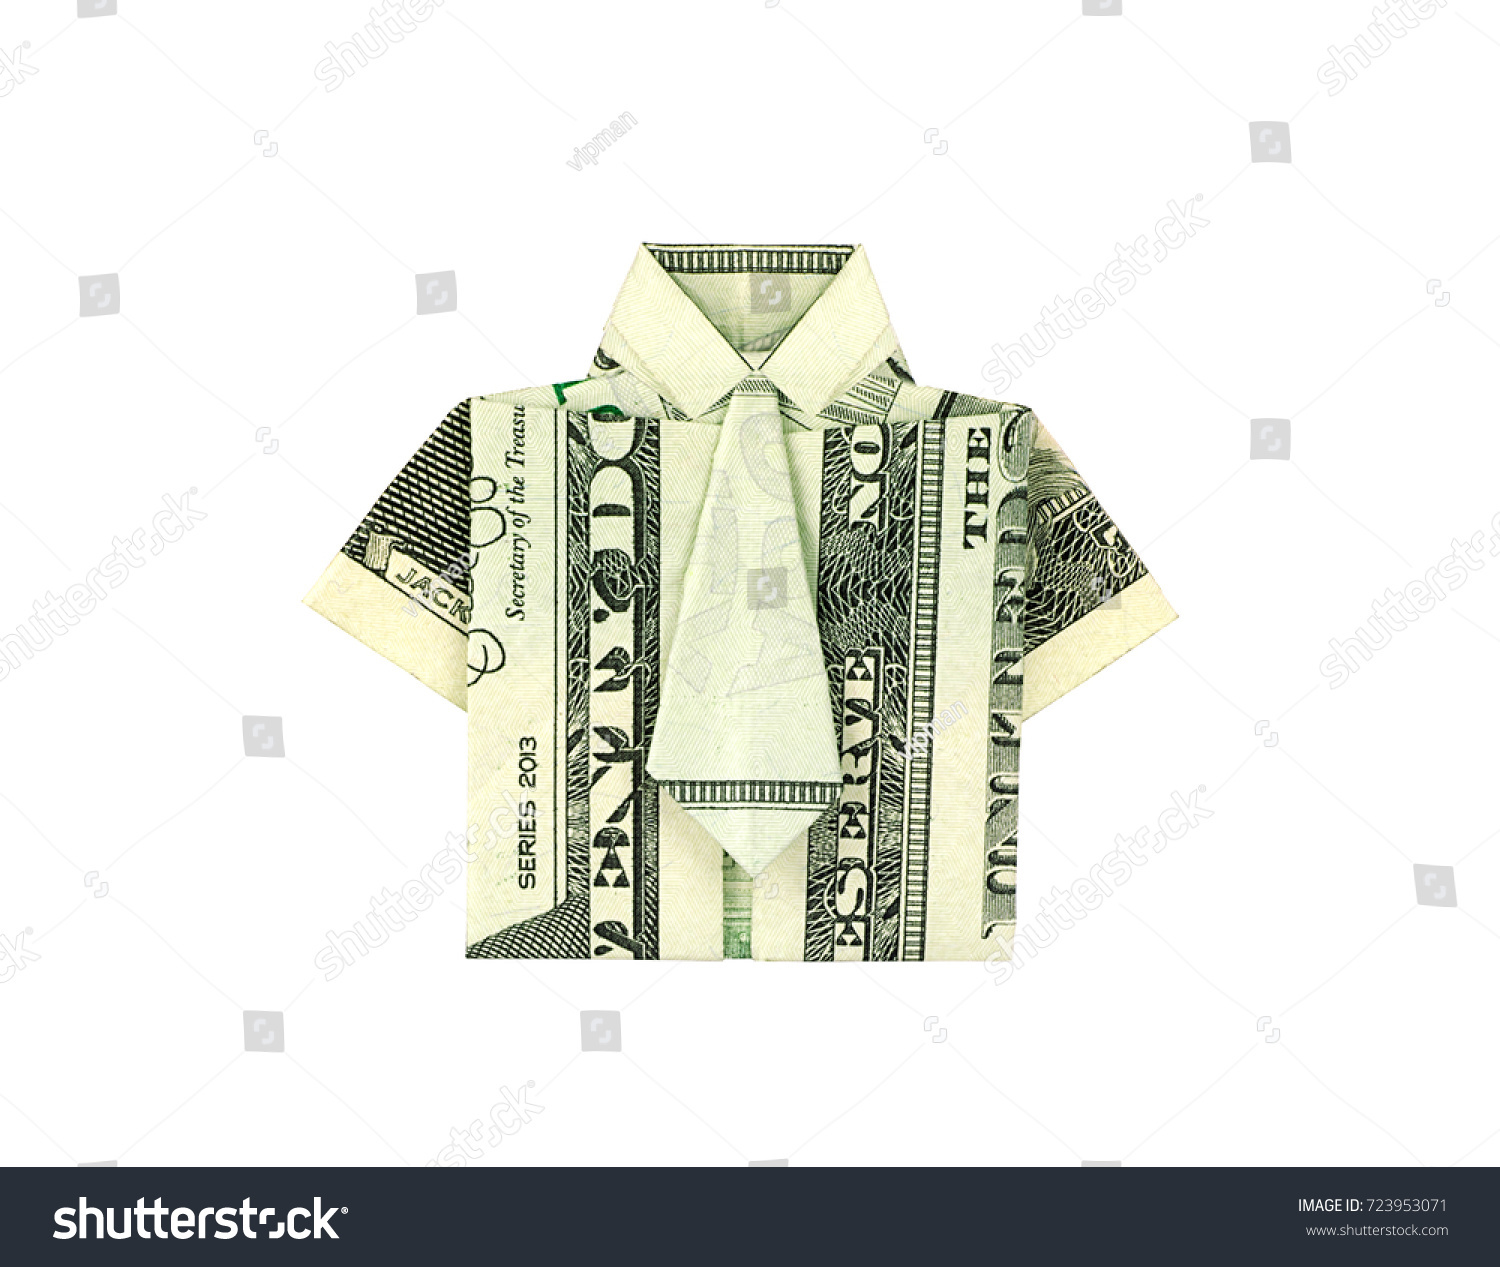 Money Origami Shirt and Tie Folding Instructions | 1267x1500